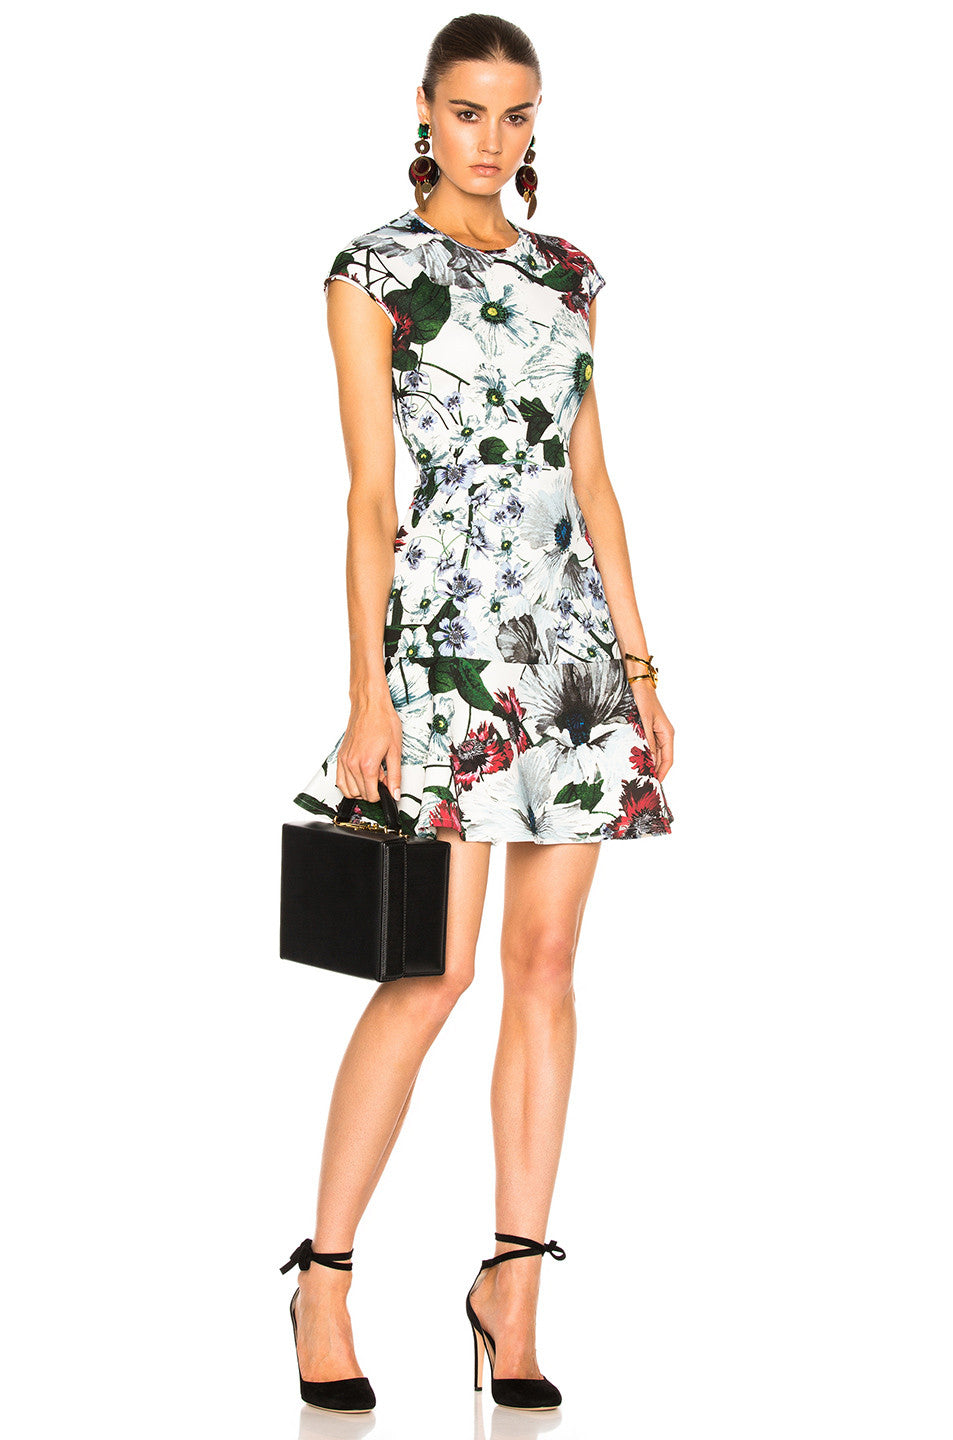 Erdem's Floral Printed Dress